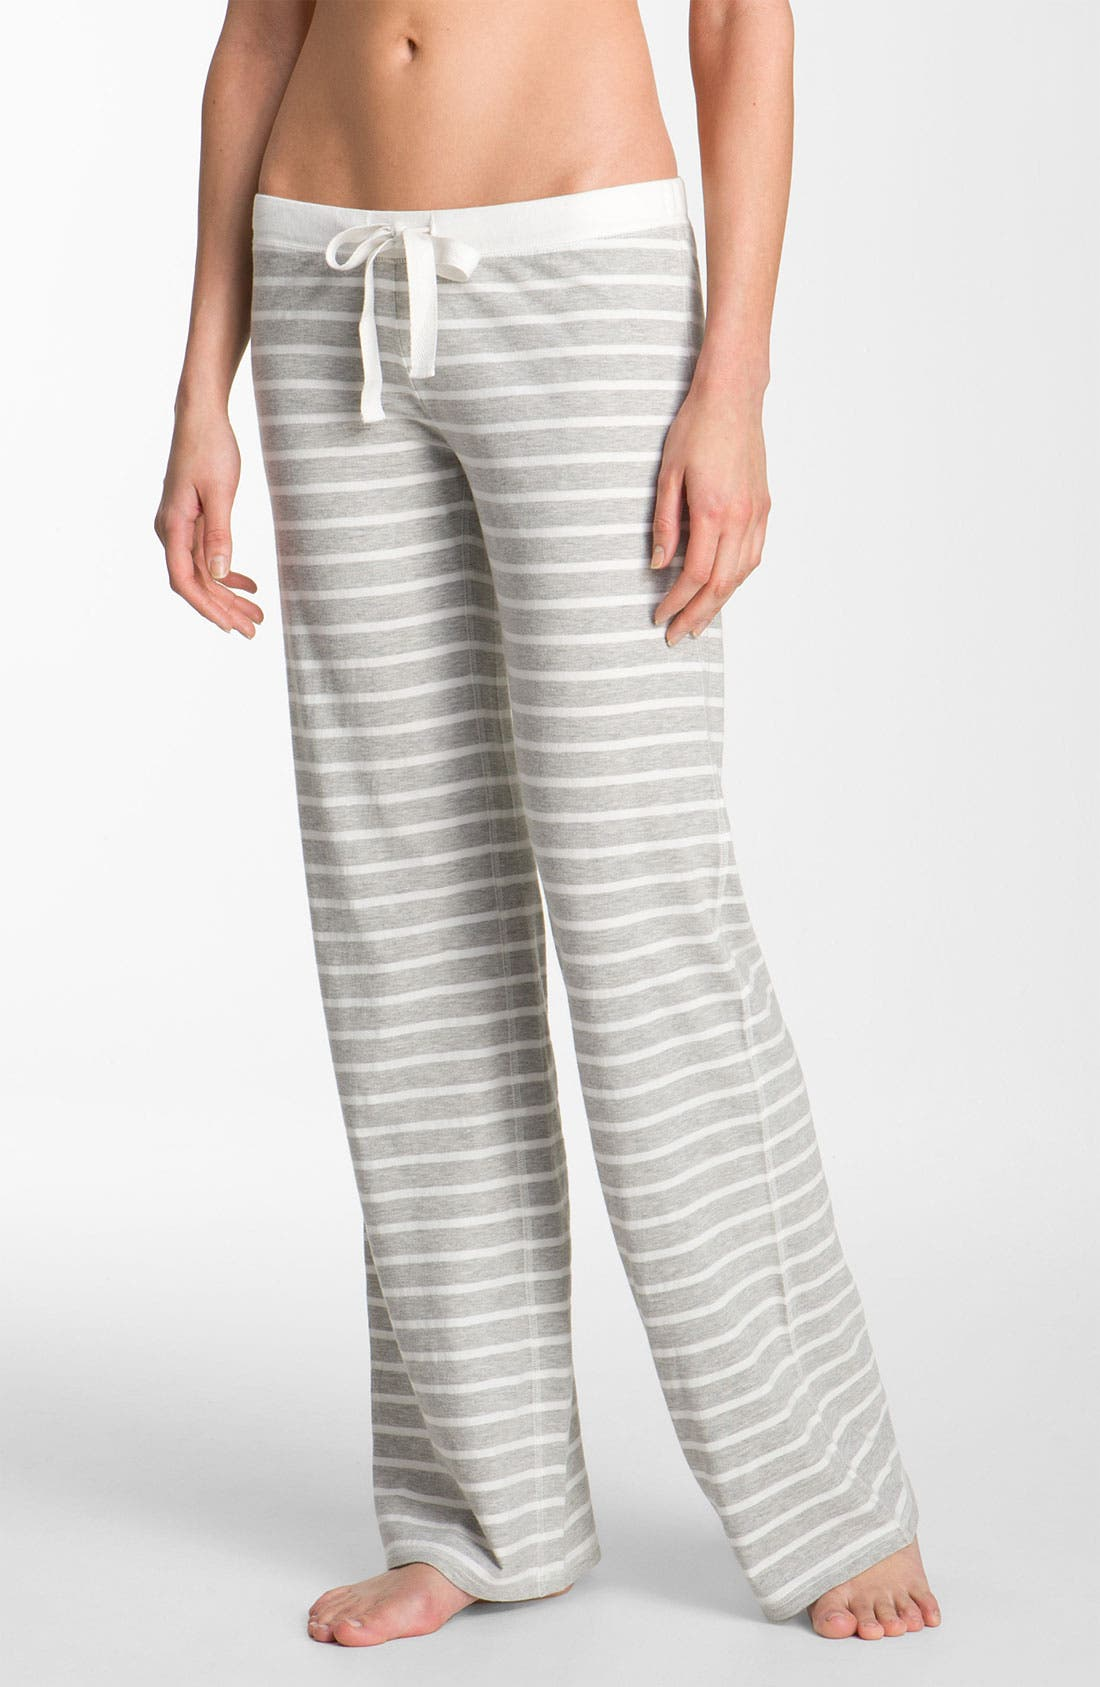 Main Image - Make + Model 'Sleepy Time' Lounge Pants